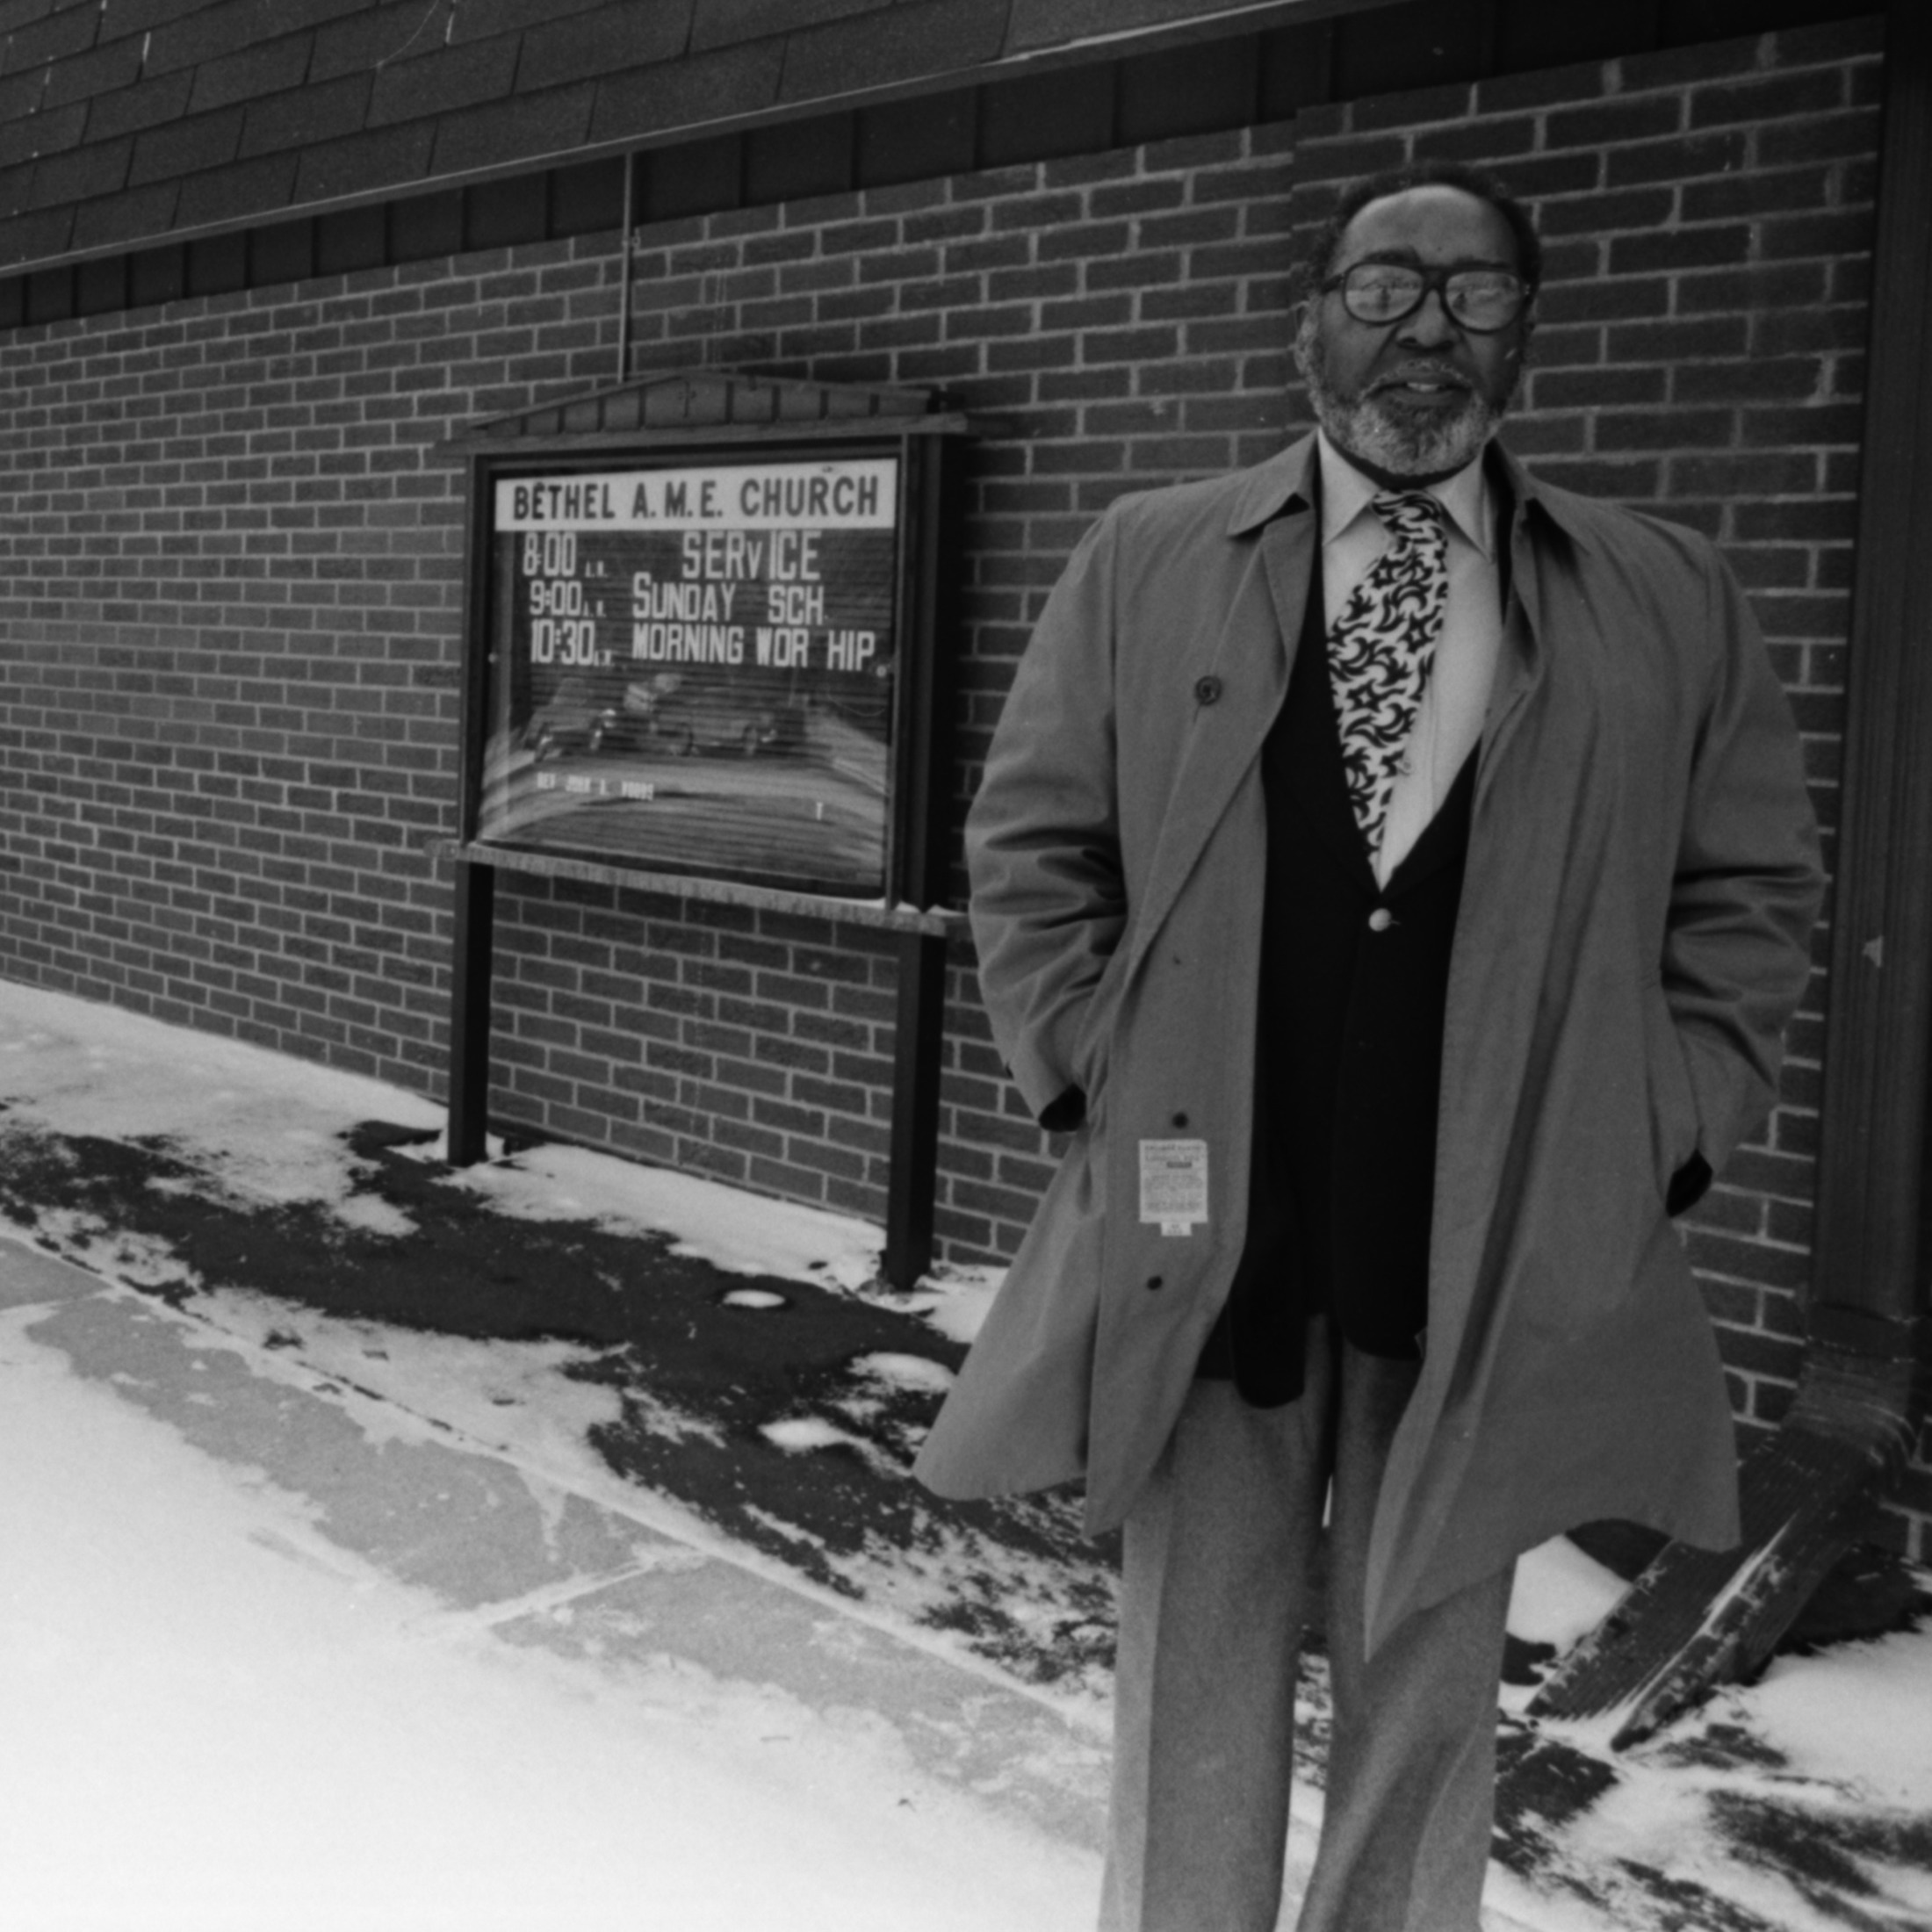 Richard D. Blake stands in front of Bethel AME Church